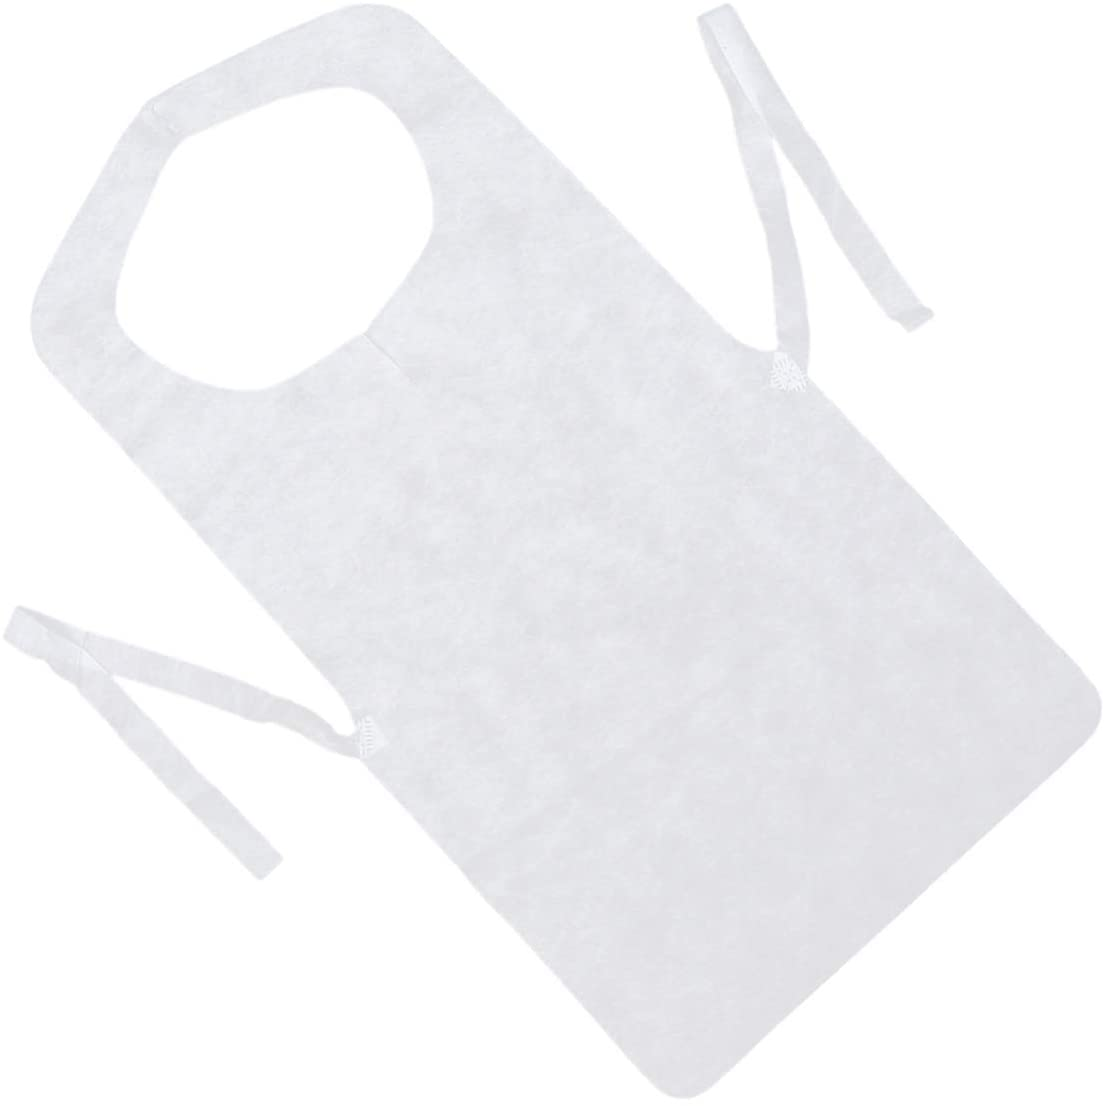 Garneck 50pcs Disposable Aprons Nonwovens Kitchen Cooking Aprons Chef Bib Cloth Protector For Gardening Painting Hairdressing 73x40cm (White)